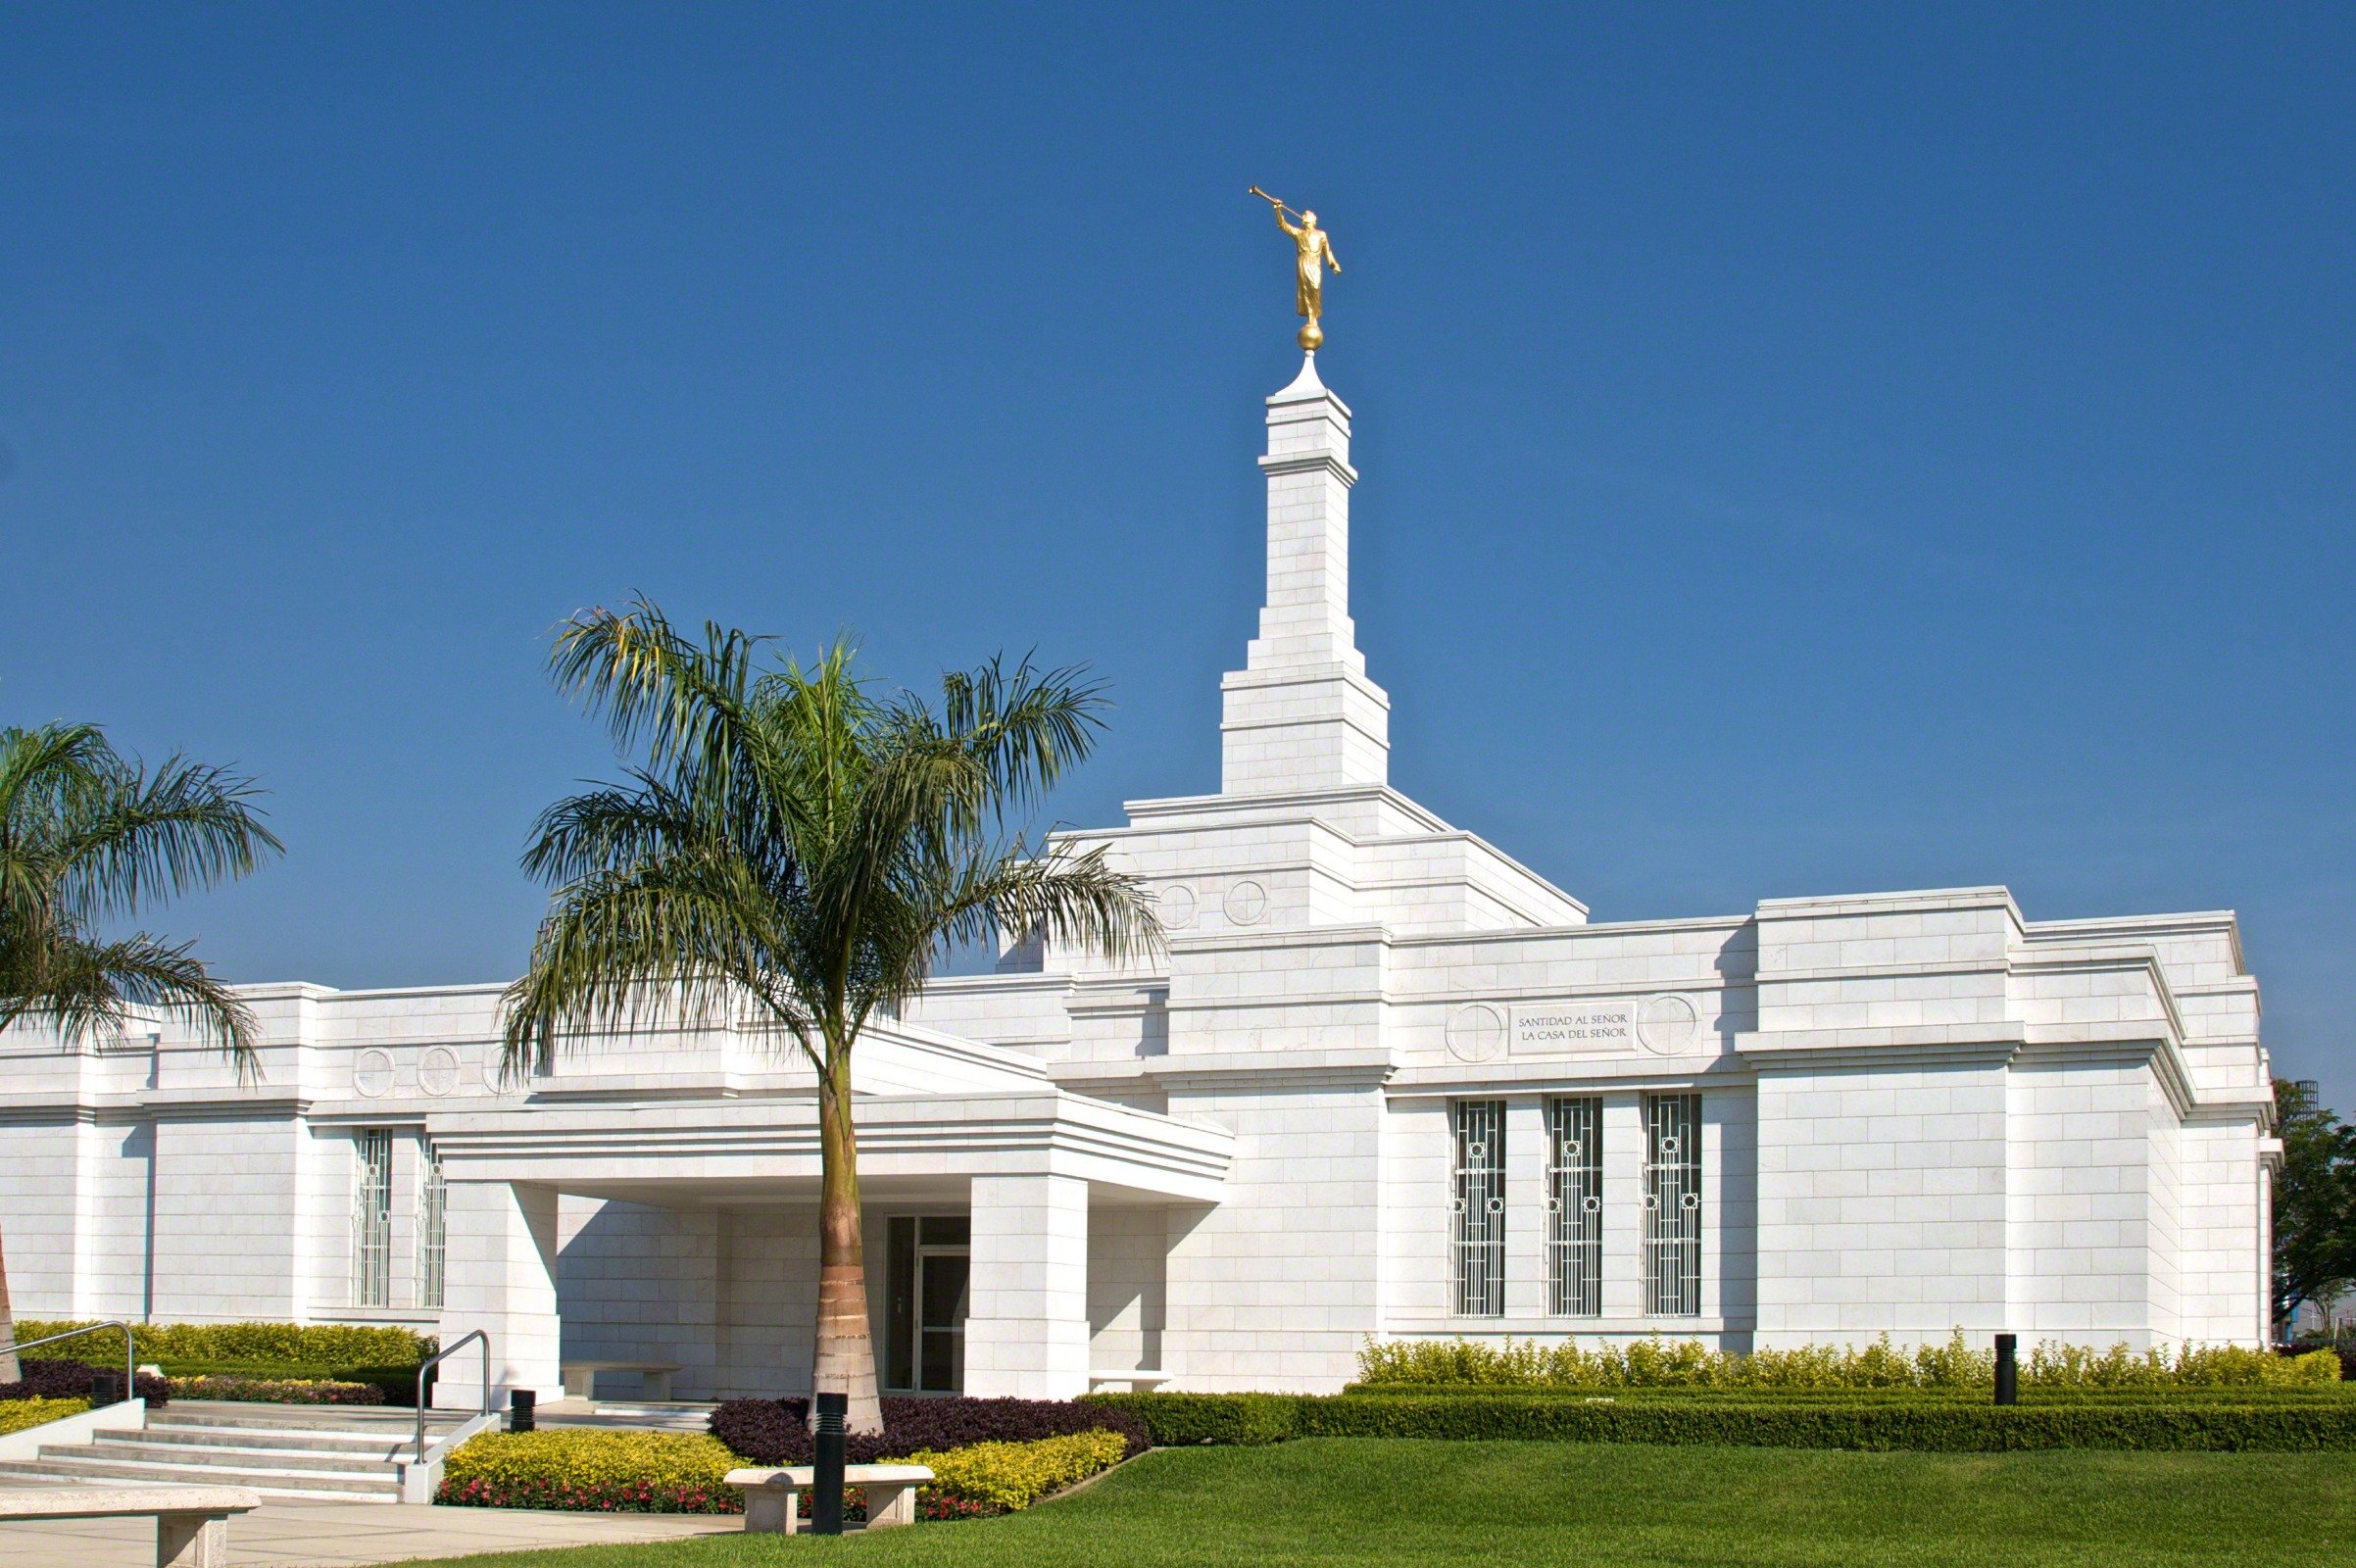 The Church of Jesus Christ of Latter-day Saints - Sweet Home Oregon | 1155 22nd Ave, Sweet Home, OR, 97386 | +1 (541) 367-2984